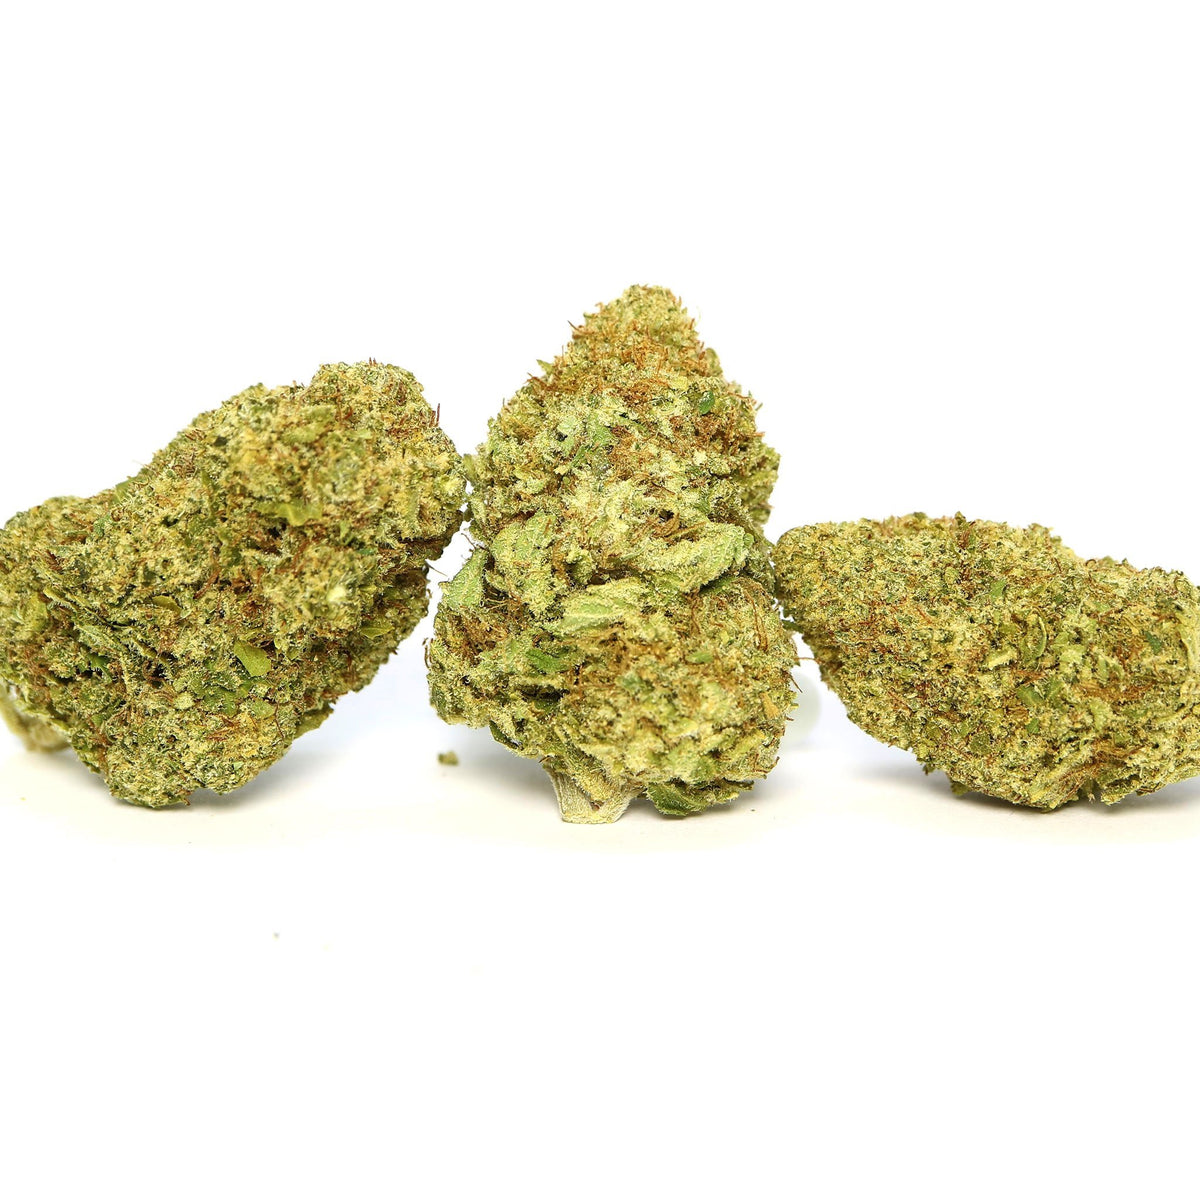 Sensi Star Dried Cannabis Flower